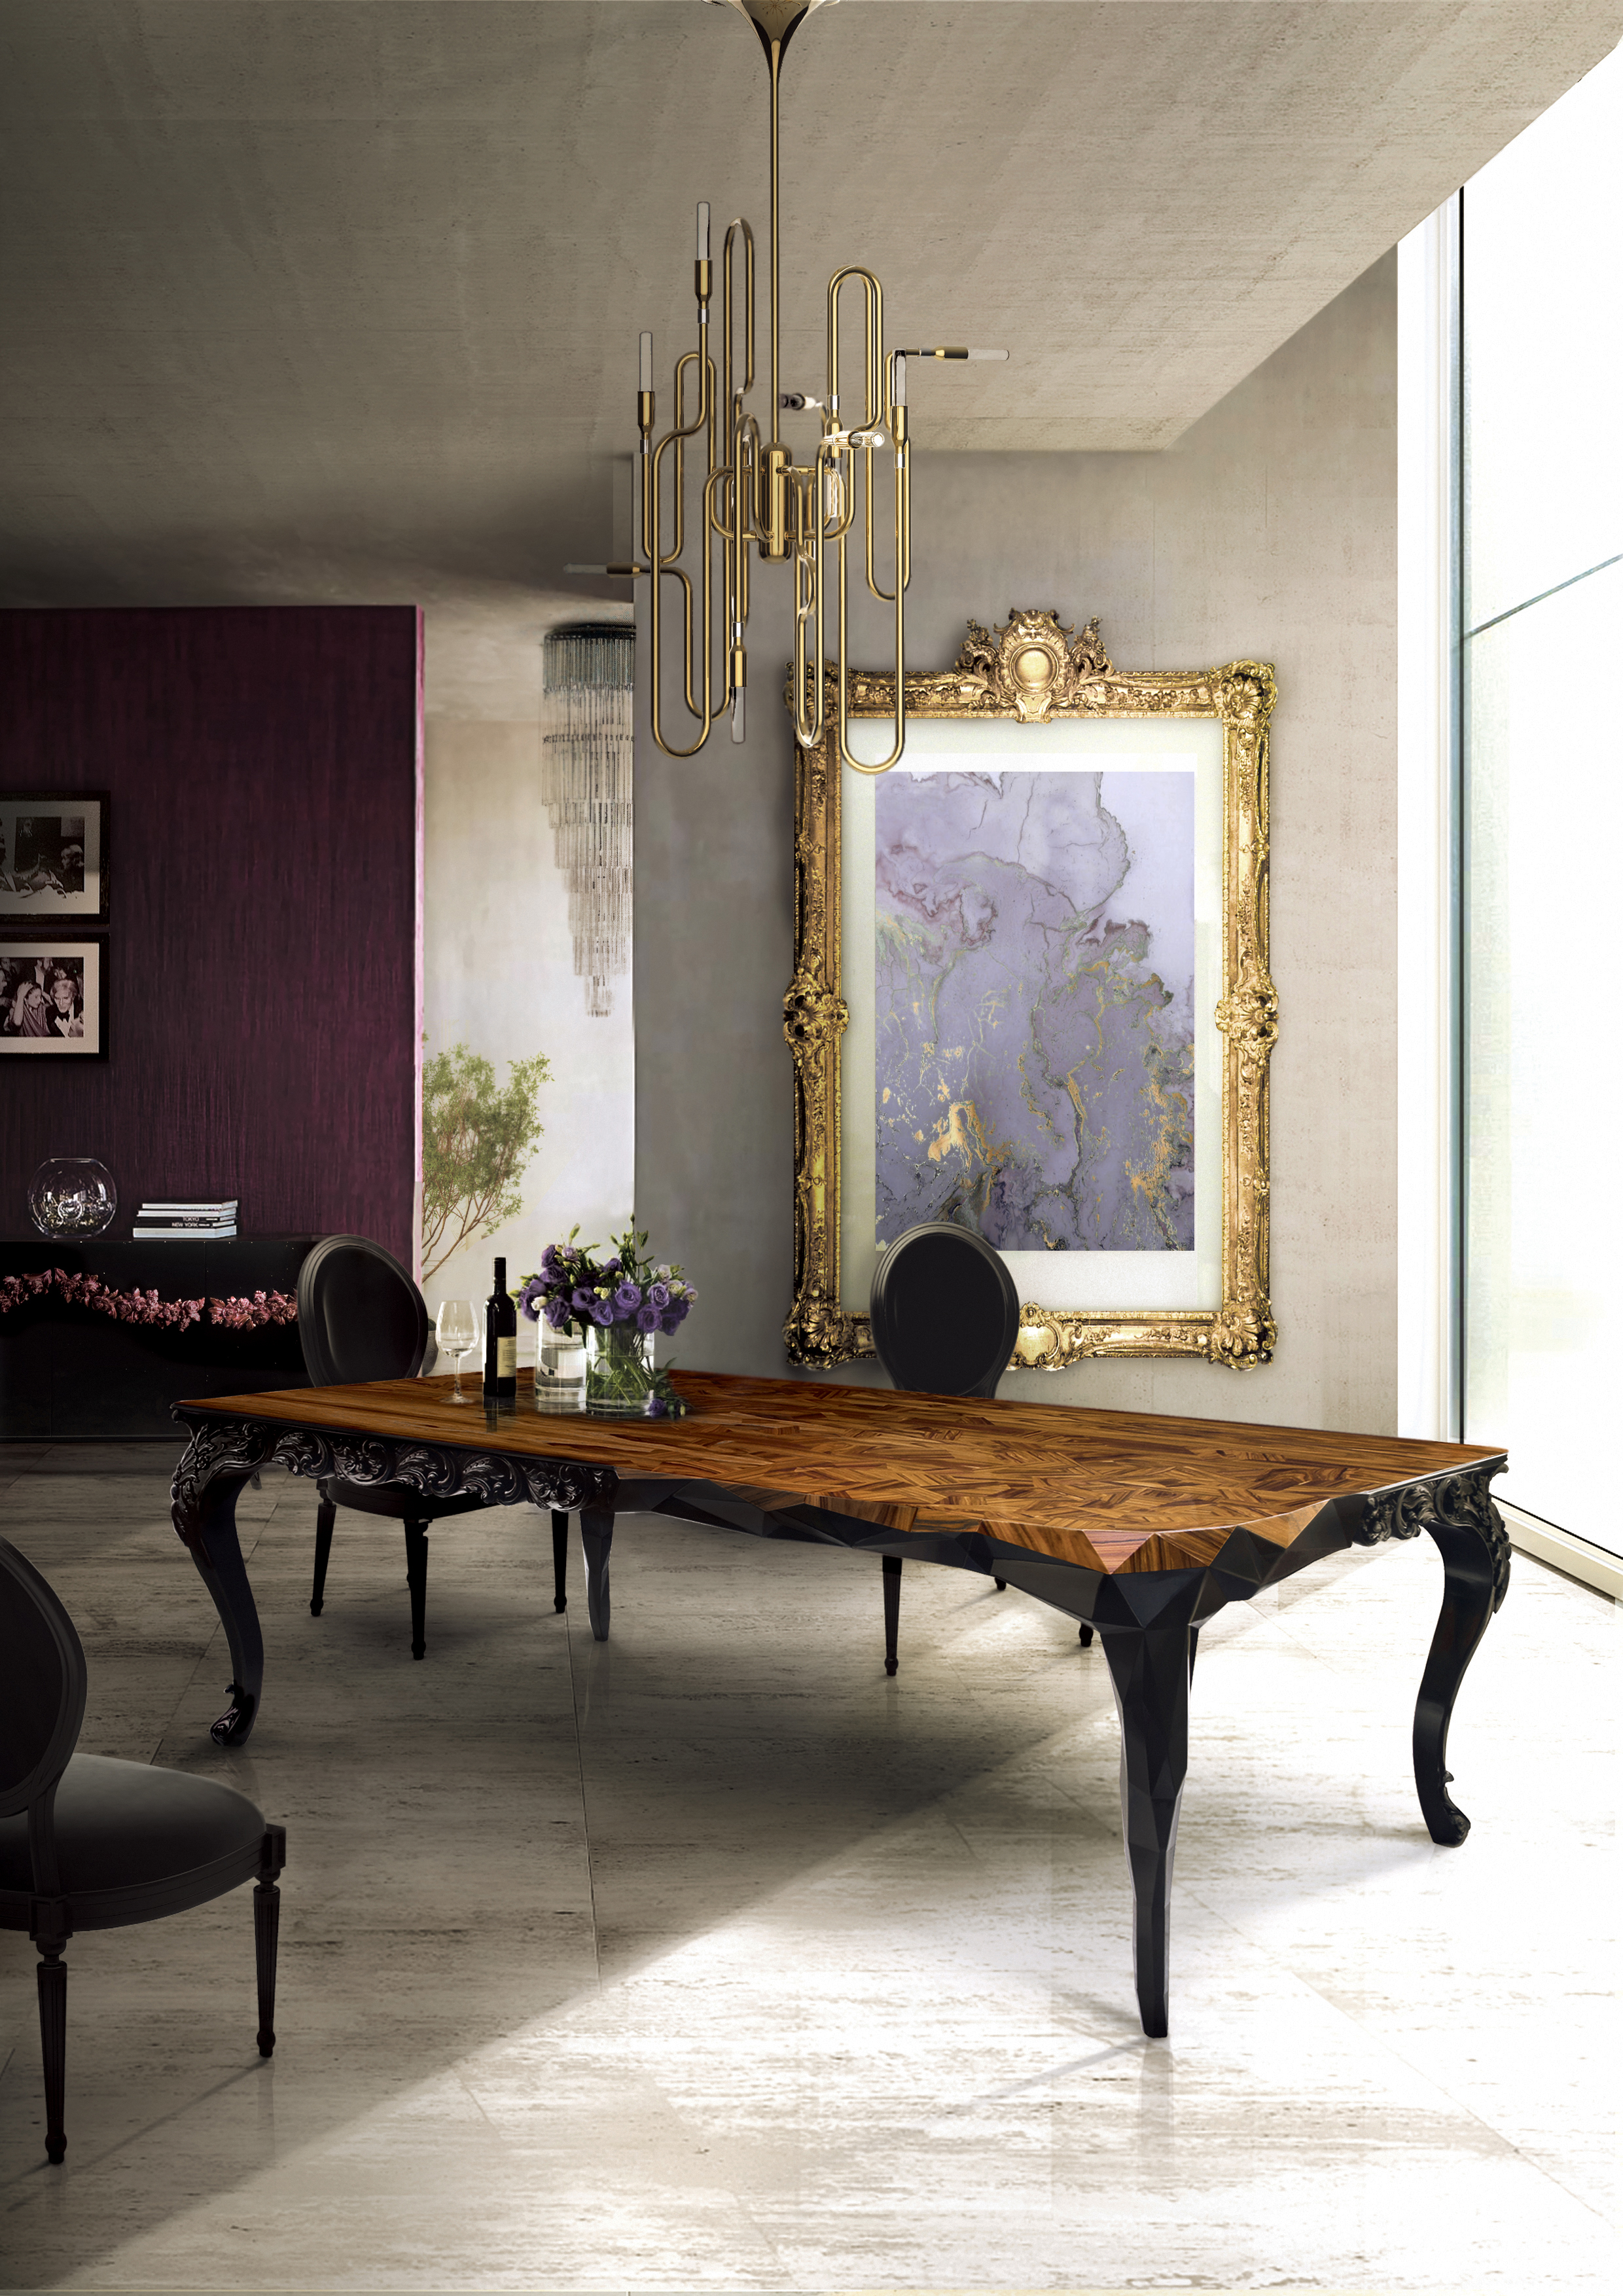 dining tables Stylish Dining Tables That Fit A Whole Family royal